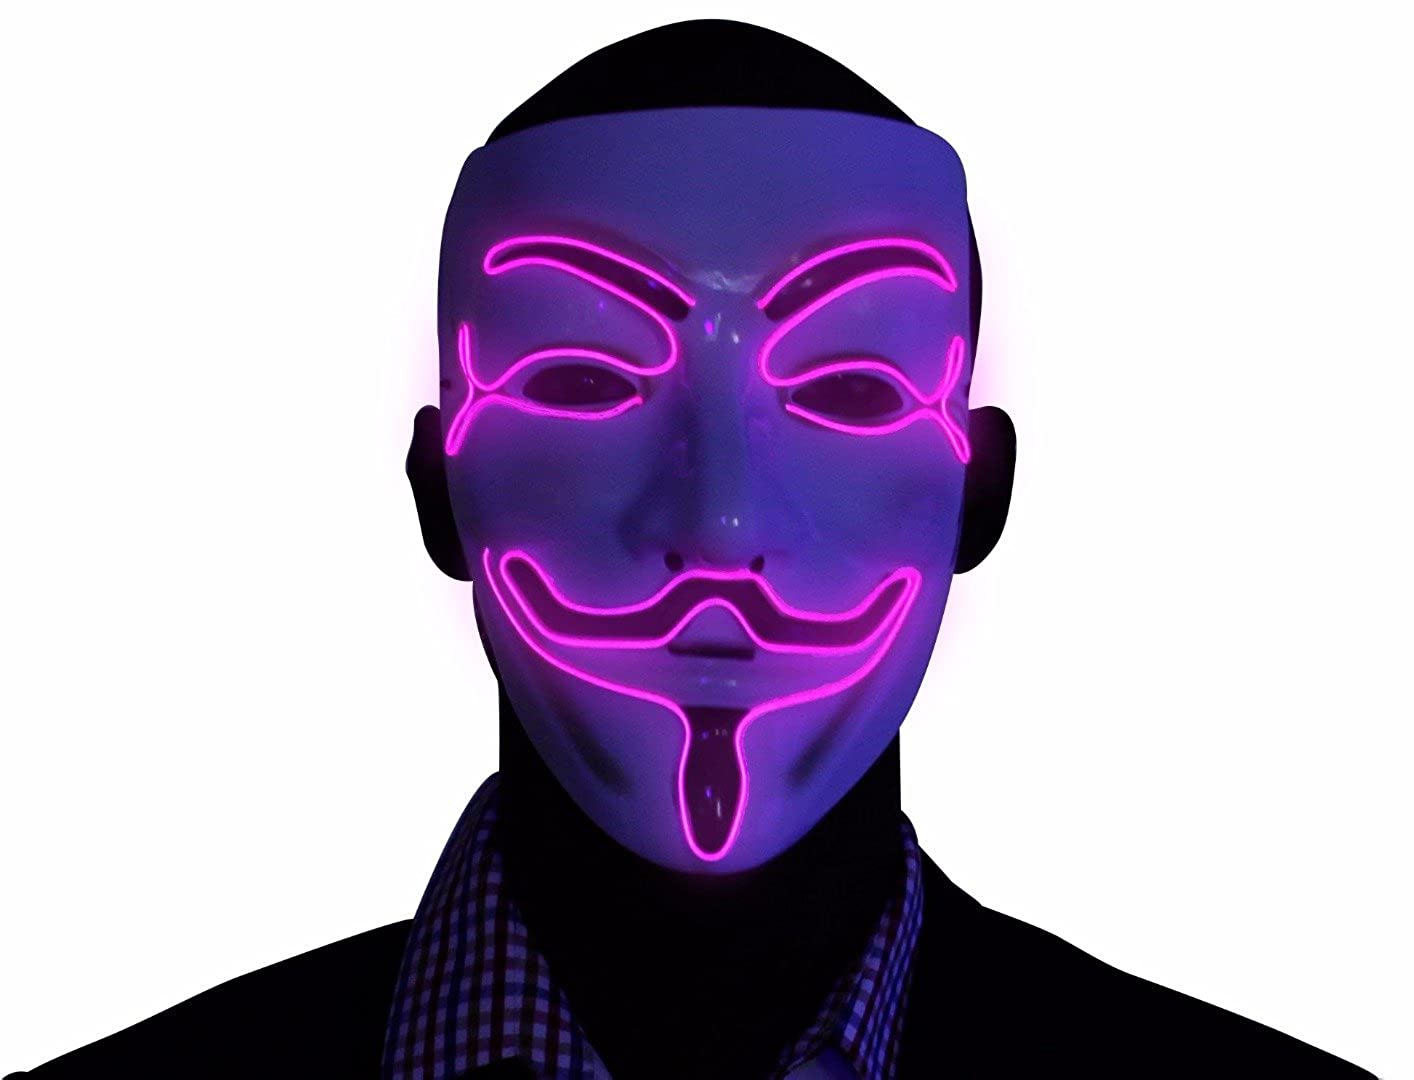 Kandi Gear Light Up V for Vendetta Mask Anonymous Mask for Rave Glow EL Wire LED Guy Fawkes Mask